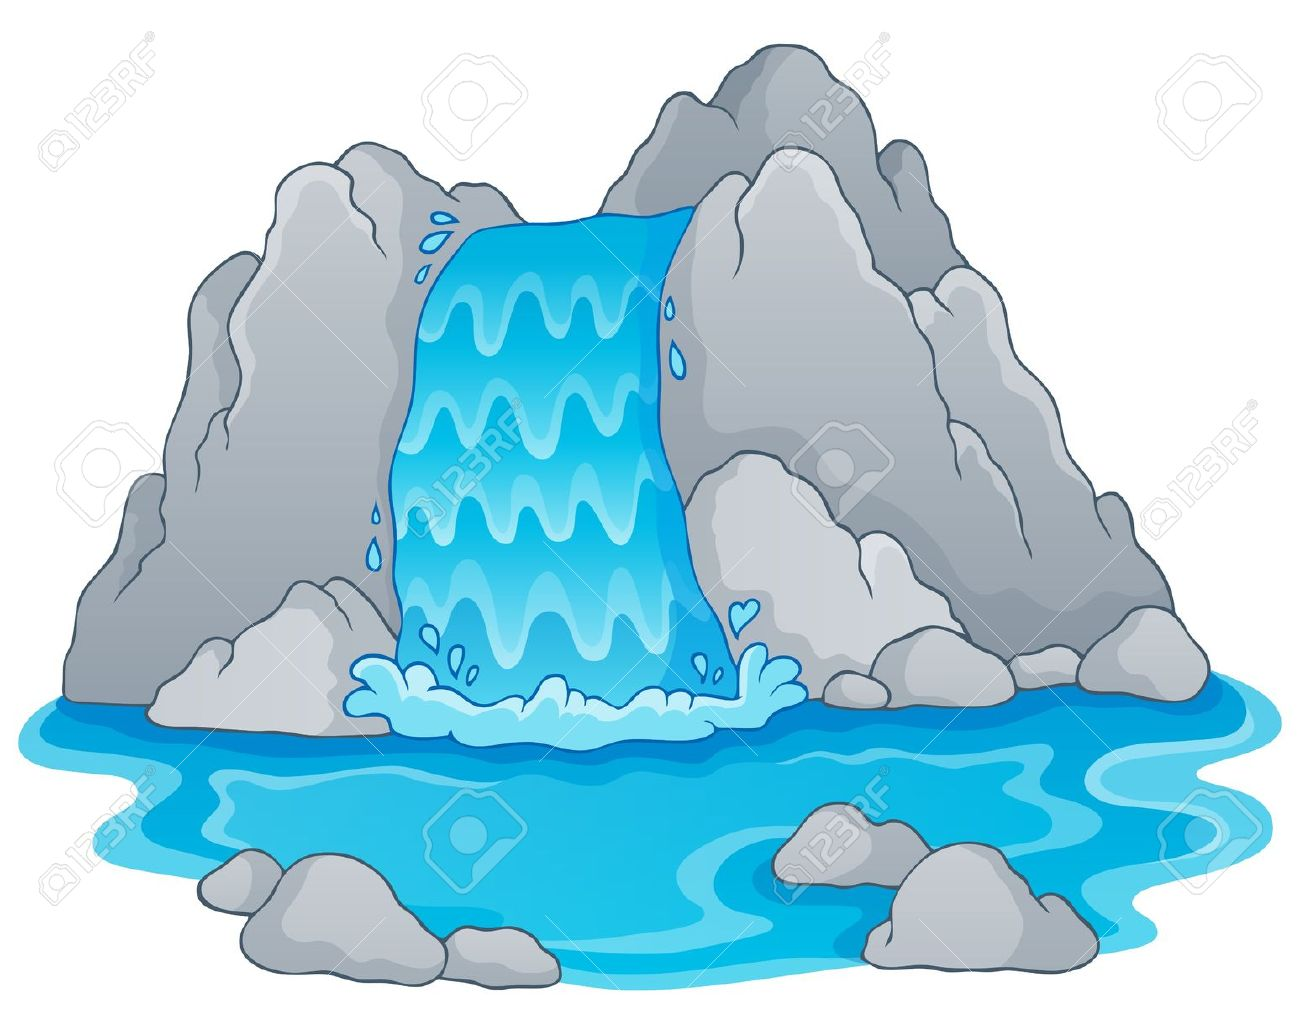 Waterfall clipart #6, Download drawings